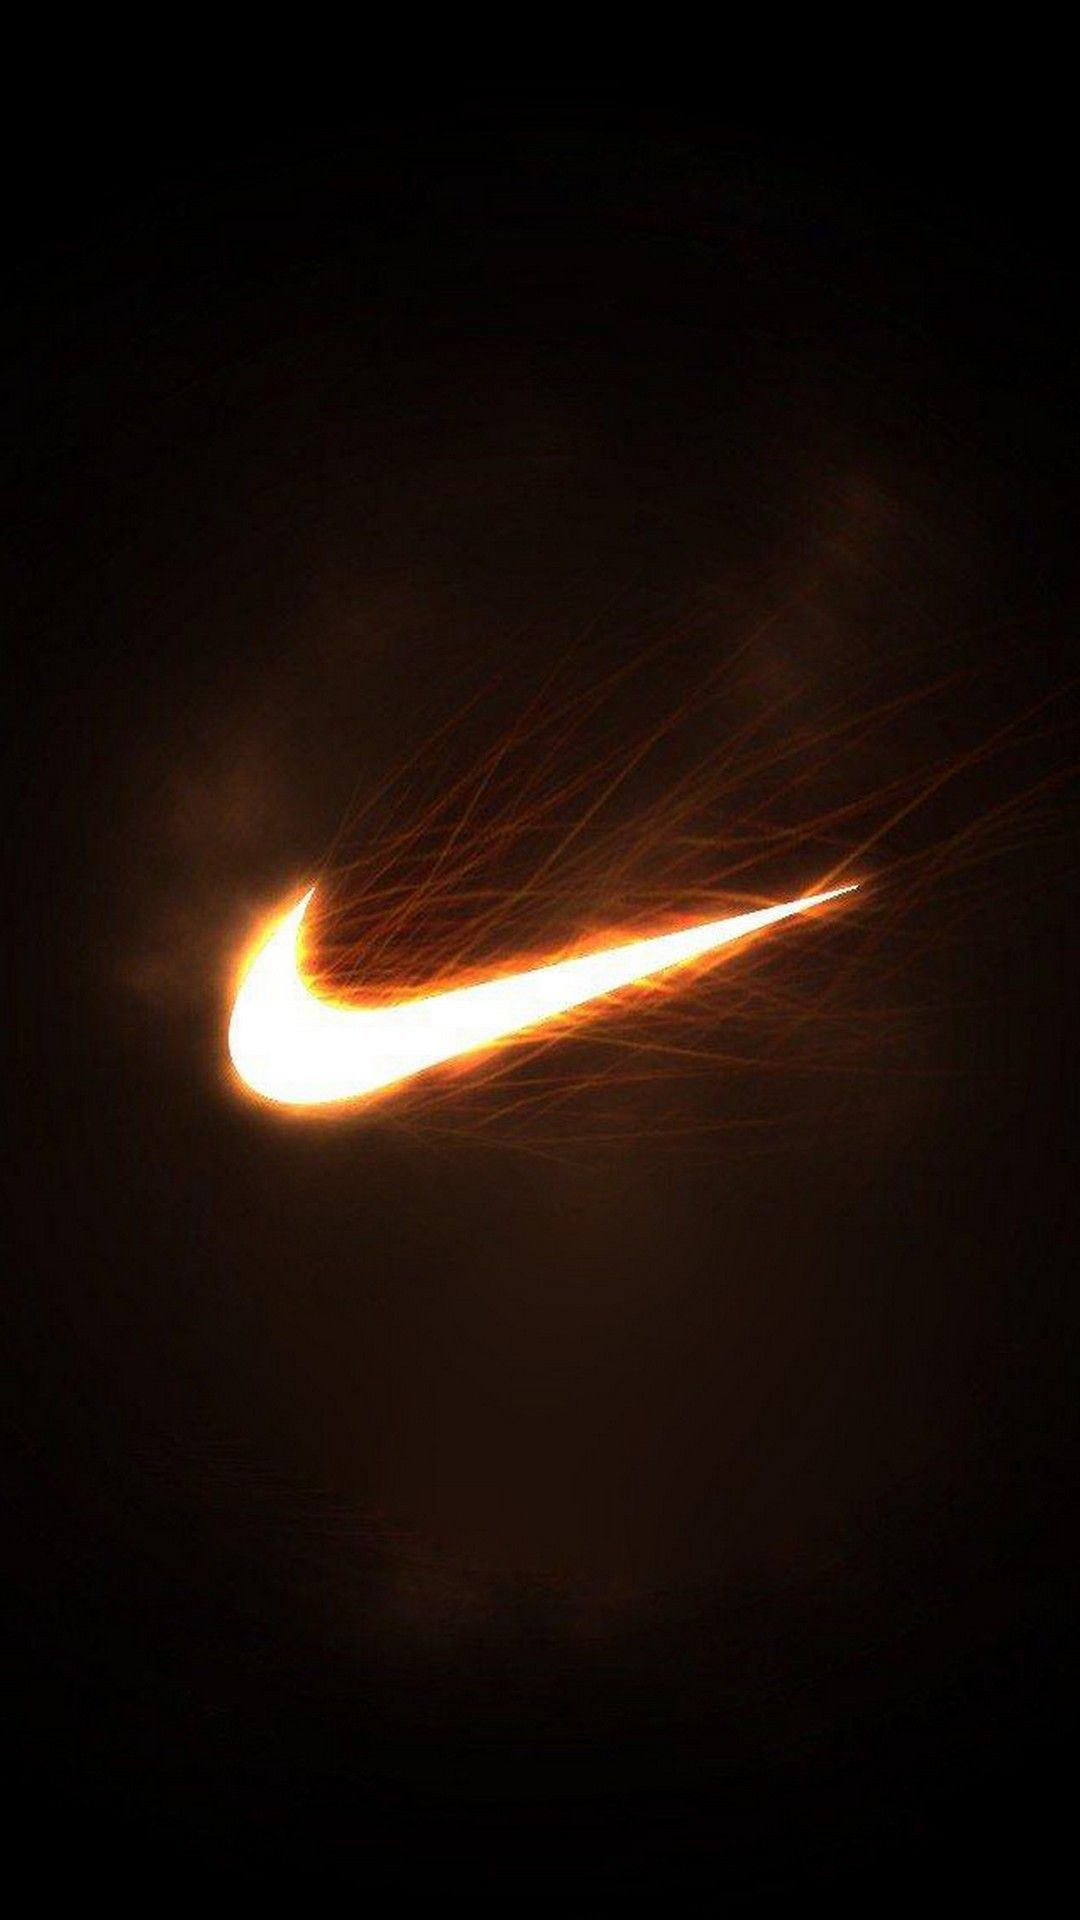 Nba Iphone 8 Wallpaper 2020 Basketball Wallpaper Nike Wallpaper Nike Wallpaper Backgrounds Nike Wallpaper Iphone